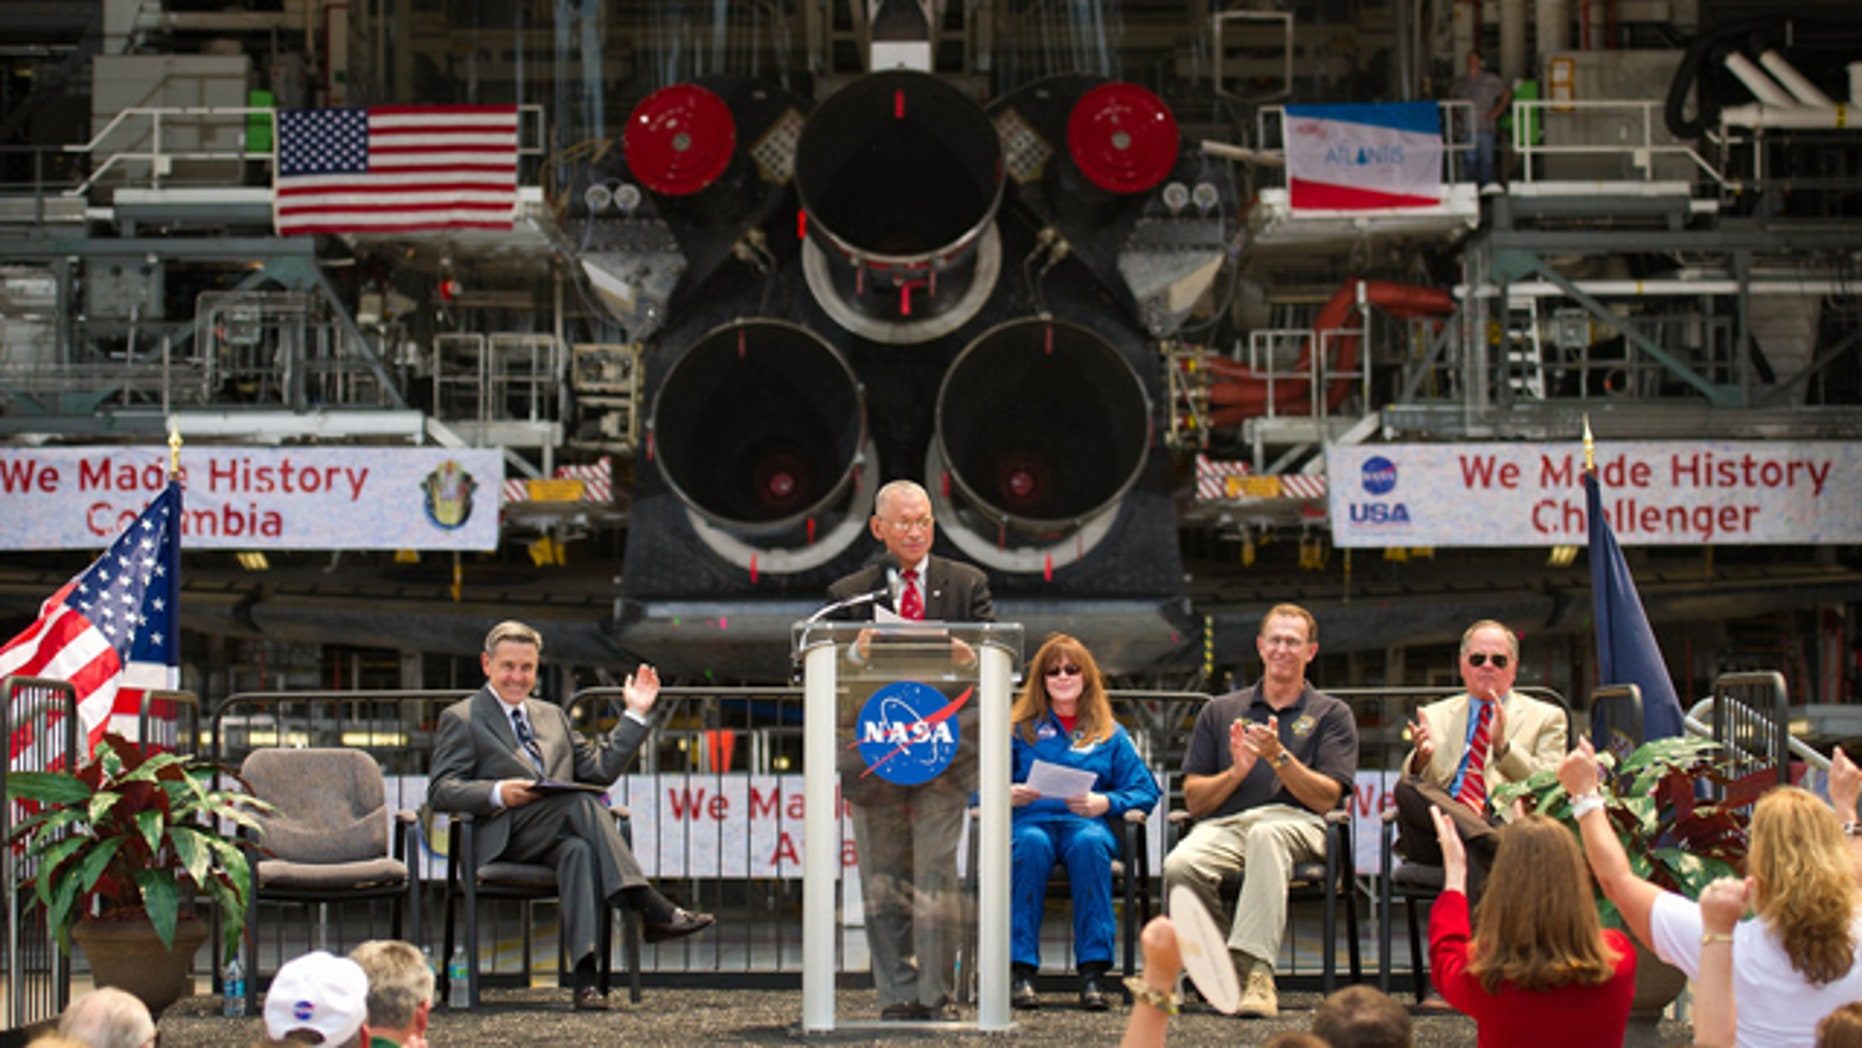 NASA Administrator Charles Bolden announces where four space shuttle orbiters will be permanently displayed at the conclusion of the Space Shuttle Program during an event held at one of the Orbiter Processing Facilities, Tuesday, April 12, 2011, at Kennedy Space Center in Cape Canaveral, Fla. The four orbiters, Enterprise, which currently is on display at the Smithsonian's Steven F. Udvar-Hazy Center near Washington Dulles International Airport, will move to the Intrepid Sea, Air & Space Museum in New York, Discovery will move to Udvar-Hazy, Endeavour will be displayed at the California Science Center in Los Angeles and Atlantis, in background, will be displayed at the Kennedy Space Center Visitors Complex.  Photo Credit: (NASA/Bill Ingalls)